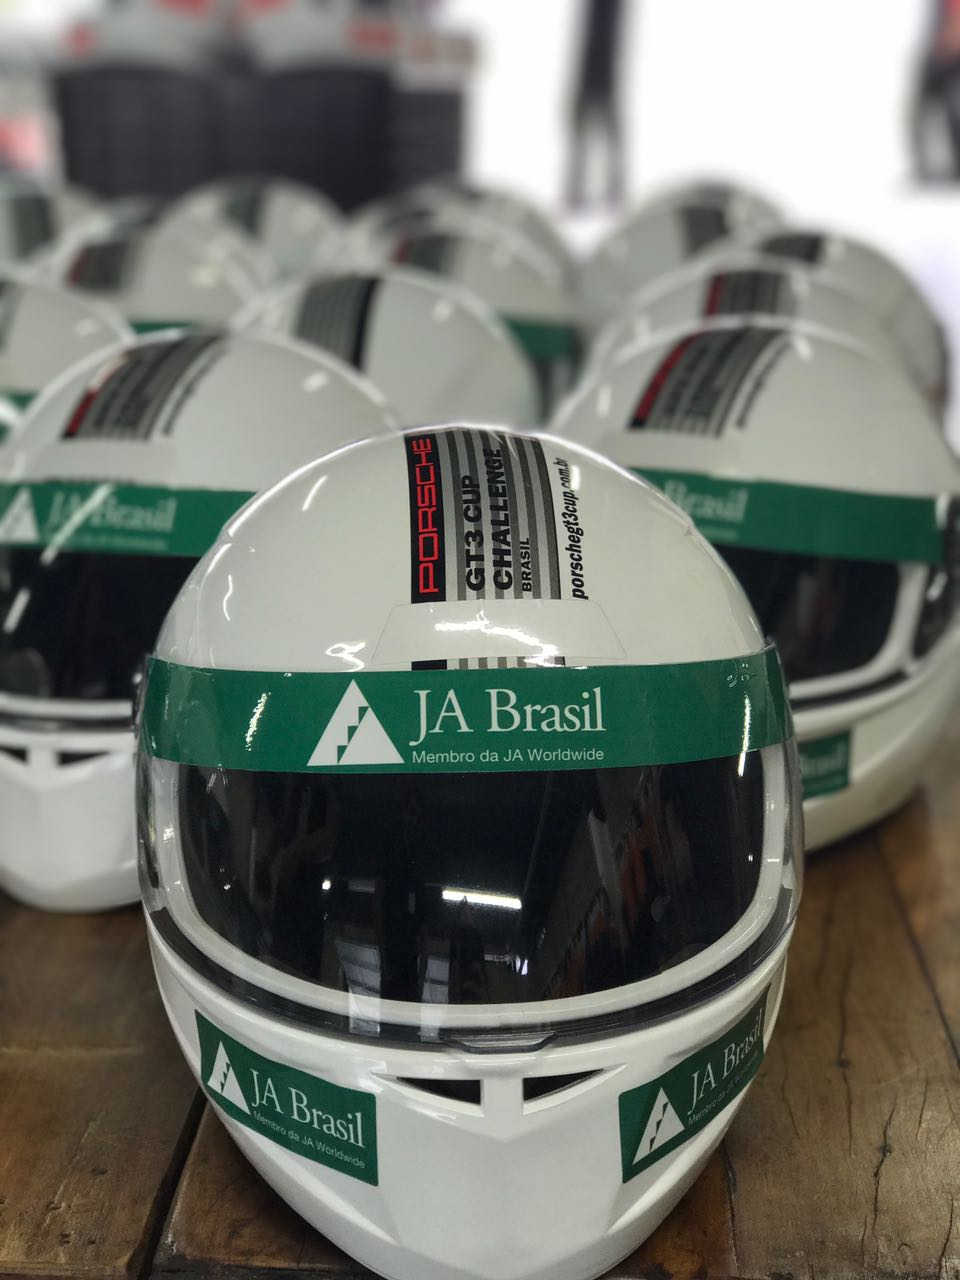 JA Brazil held a fundraising activity during the Porsche GT3 Cup -